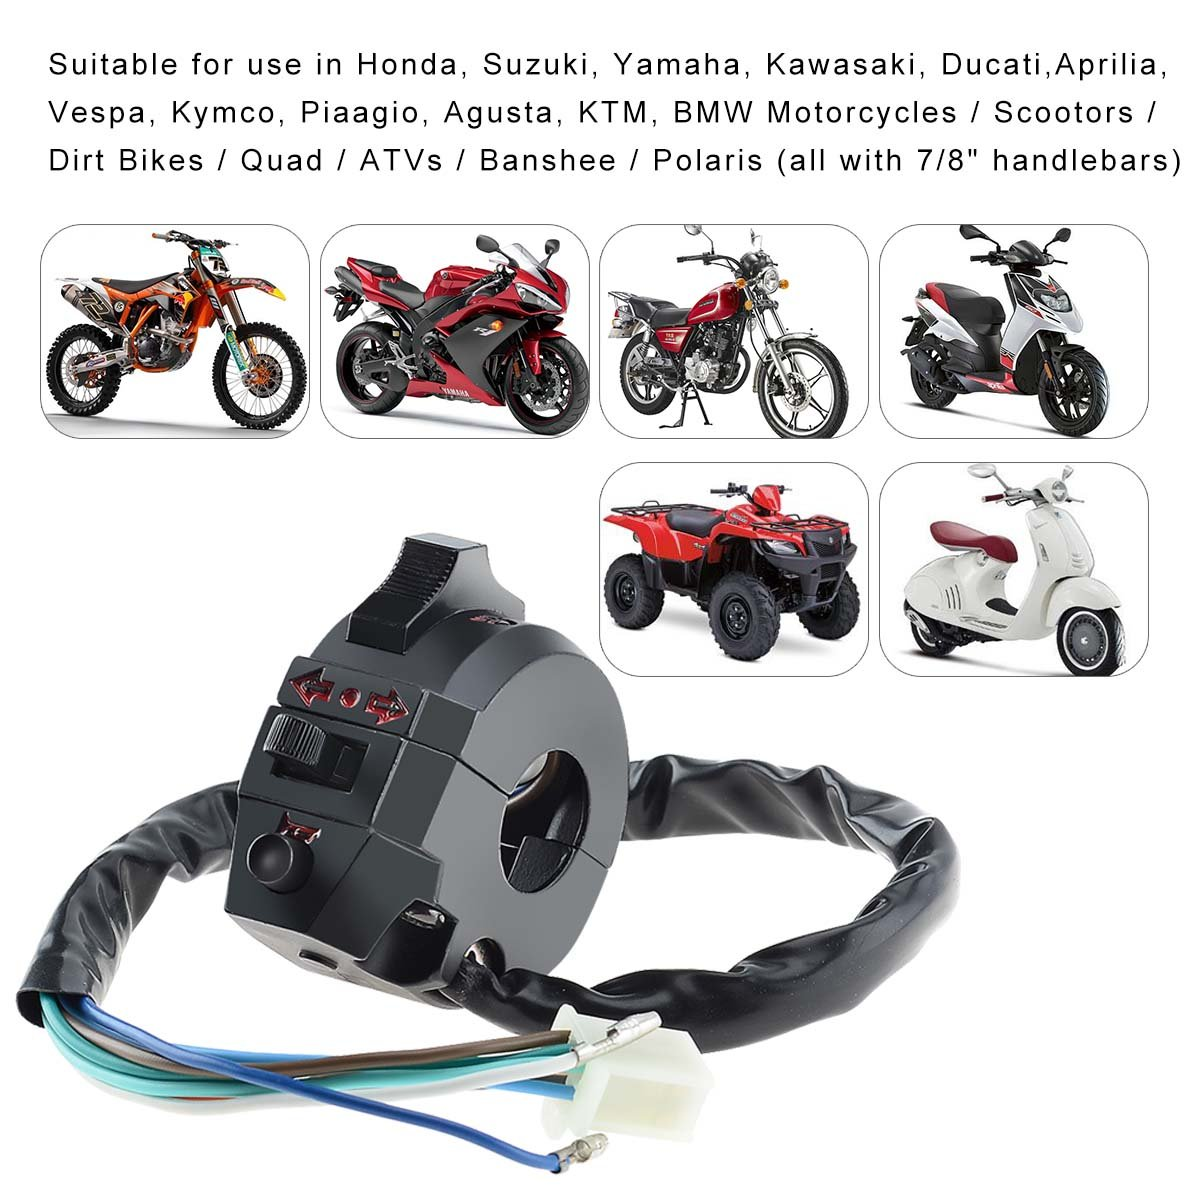 Amazon.com: Kawell Switch light turn signal Switch dirt bike honda ktm  suzuki kawasaki yamaha sport motorcycle universal 520 450 530 500 250 wr  wrf xr 600 ...